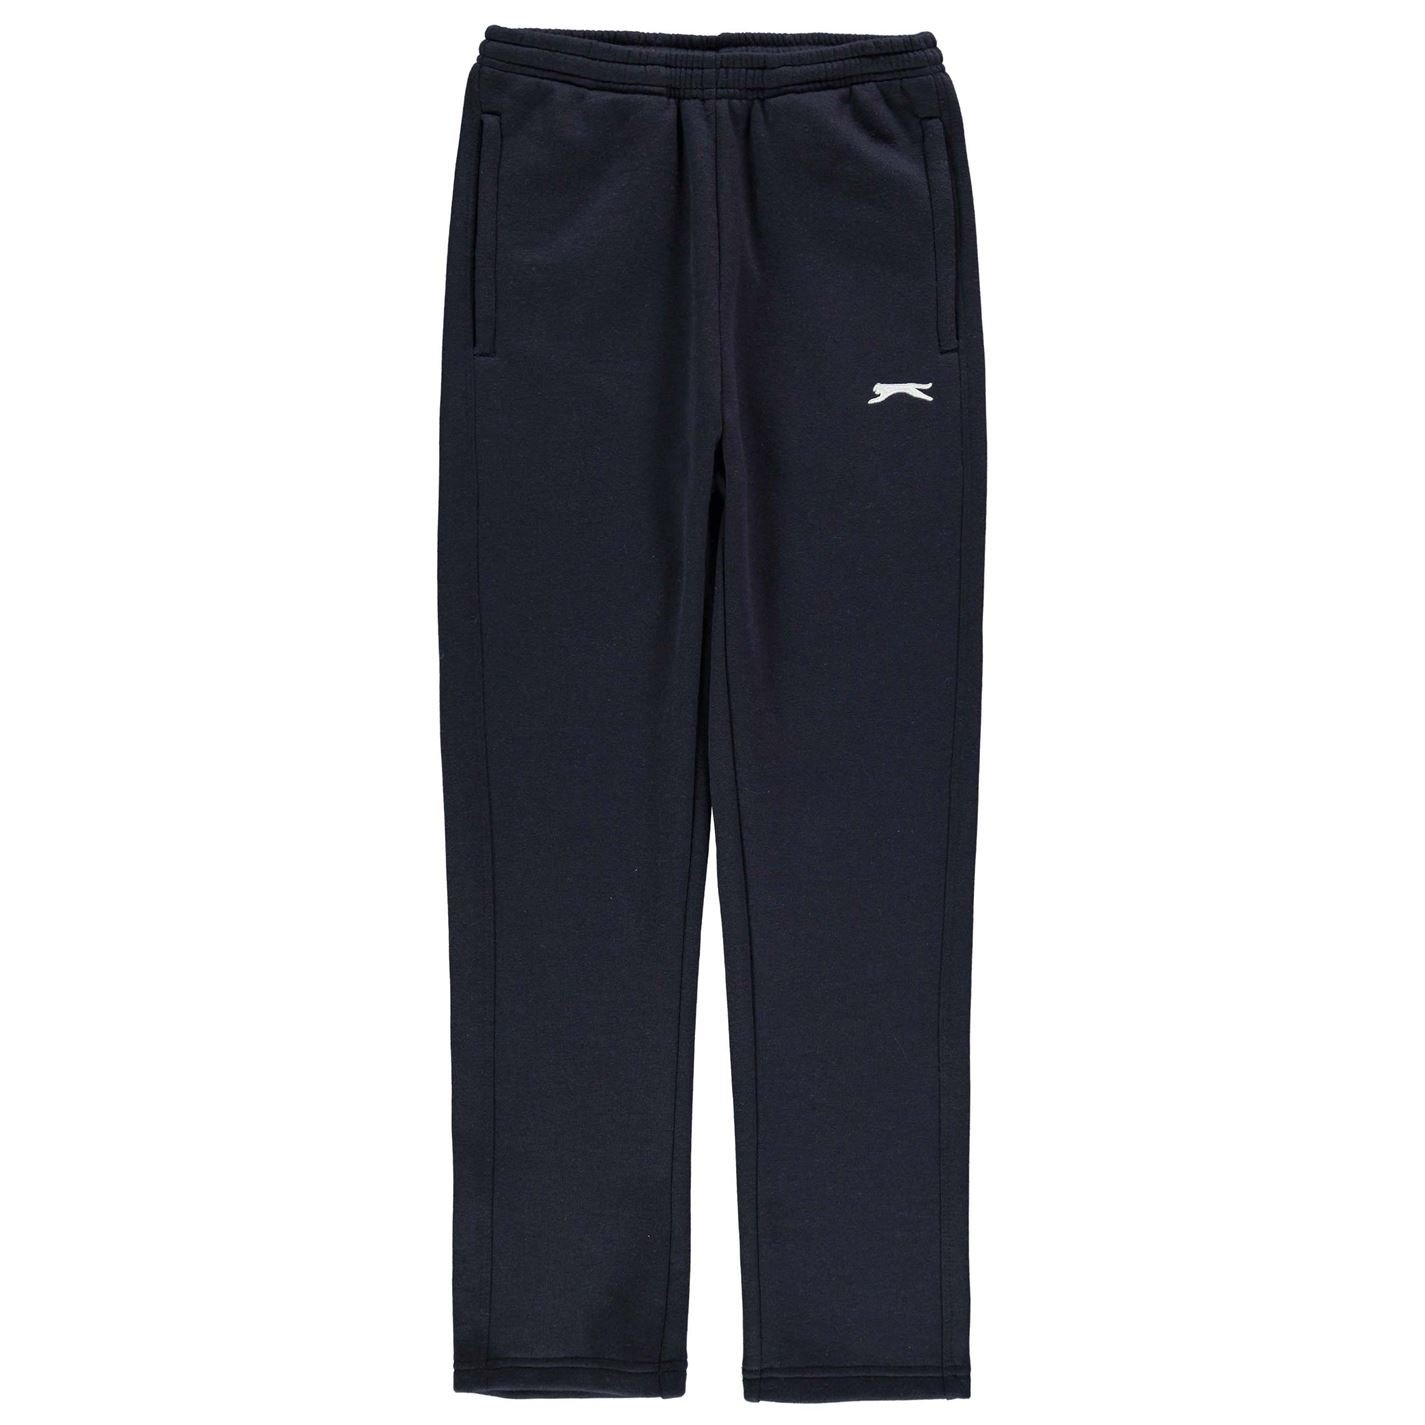 Slazenger Boys' Trousers Slazenger Boys' Trousers